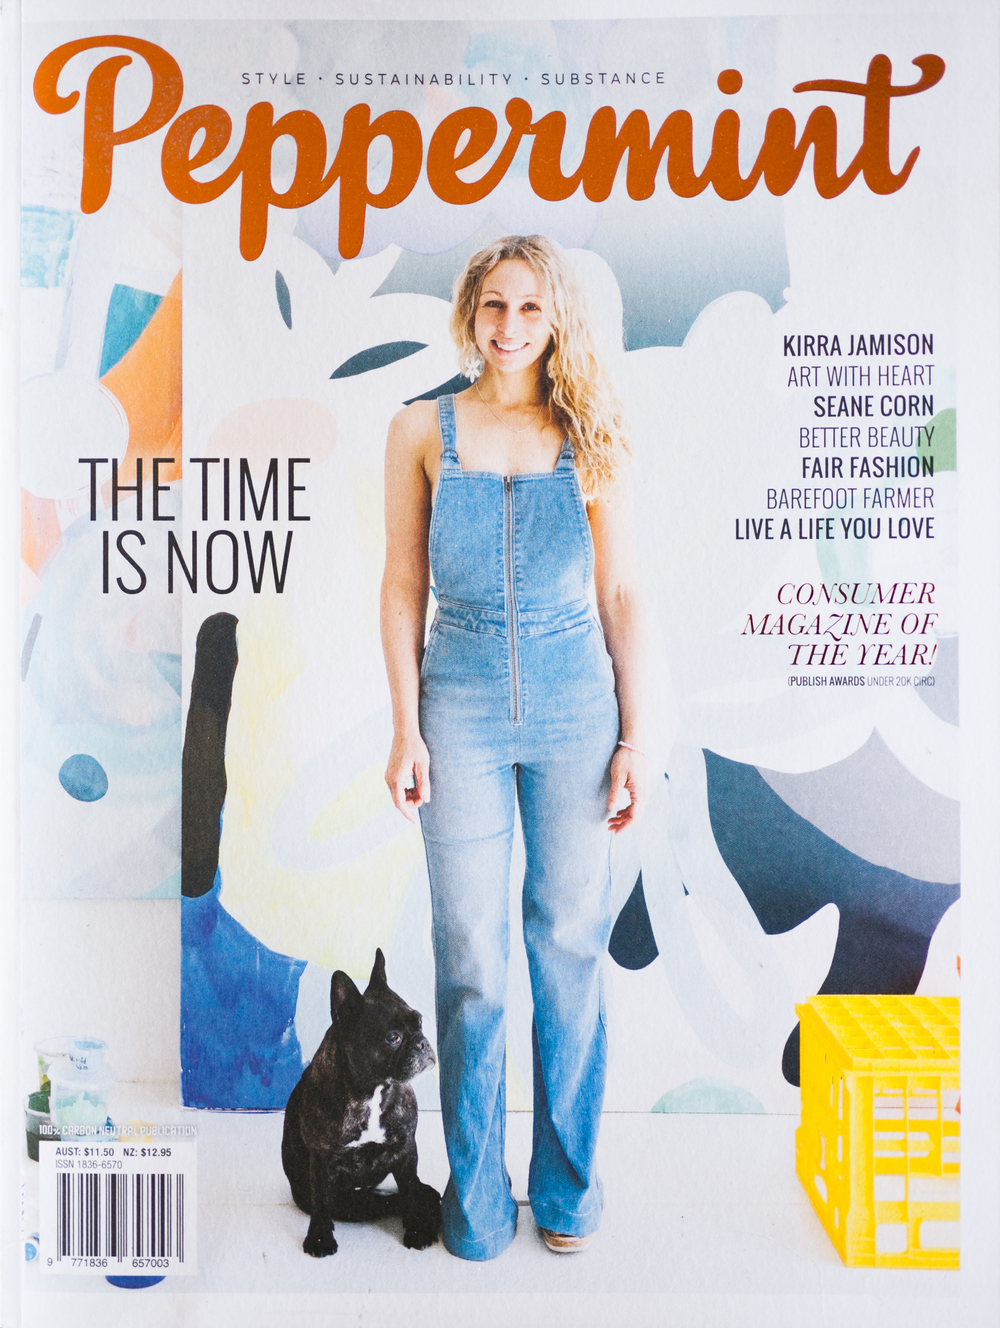 Peppermint Magazine Australia Feature Spread Pg 98/99 November 2015